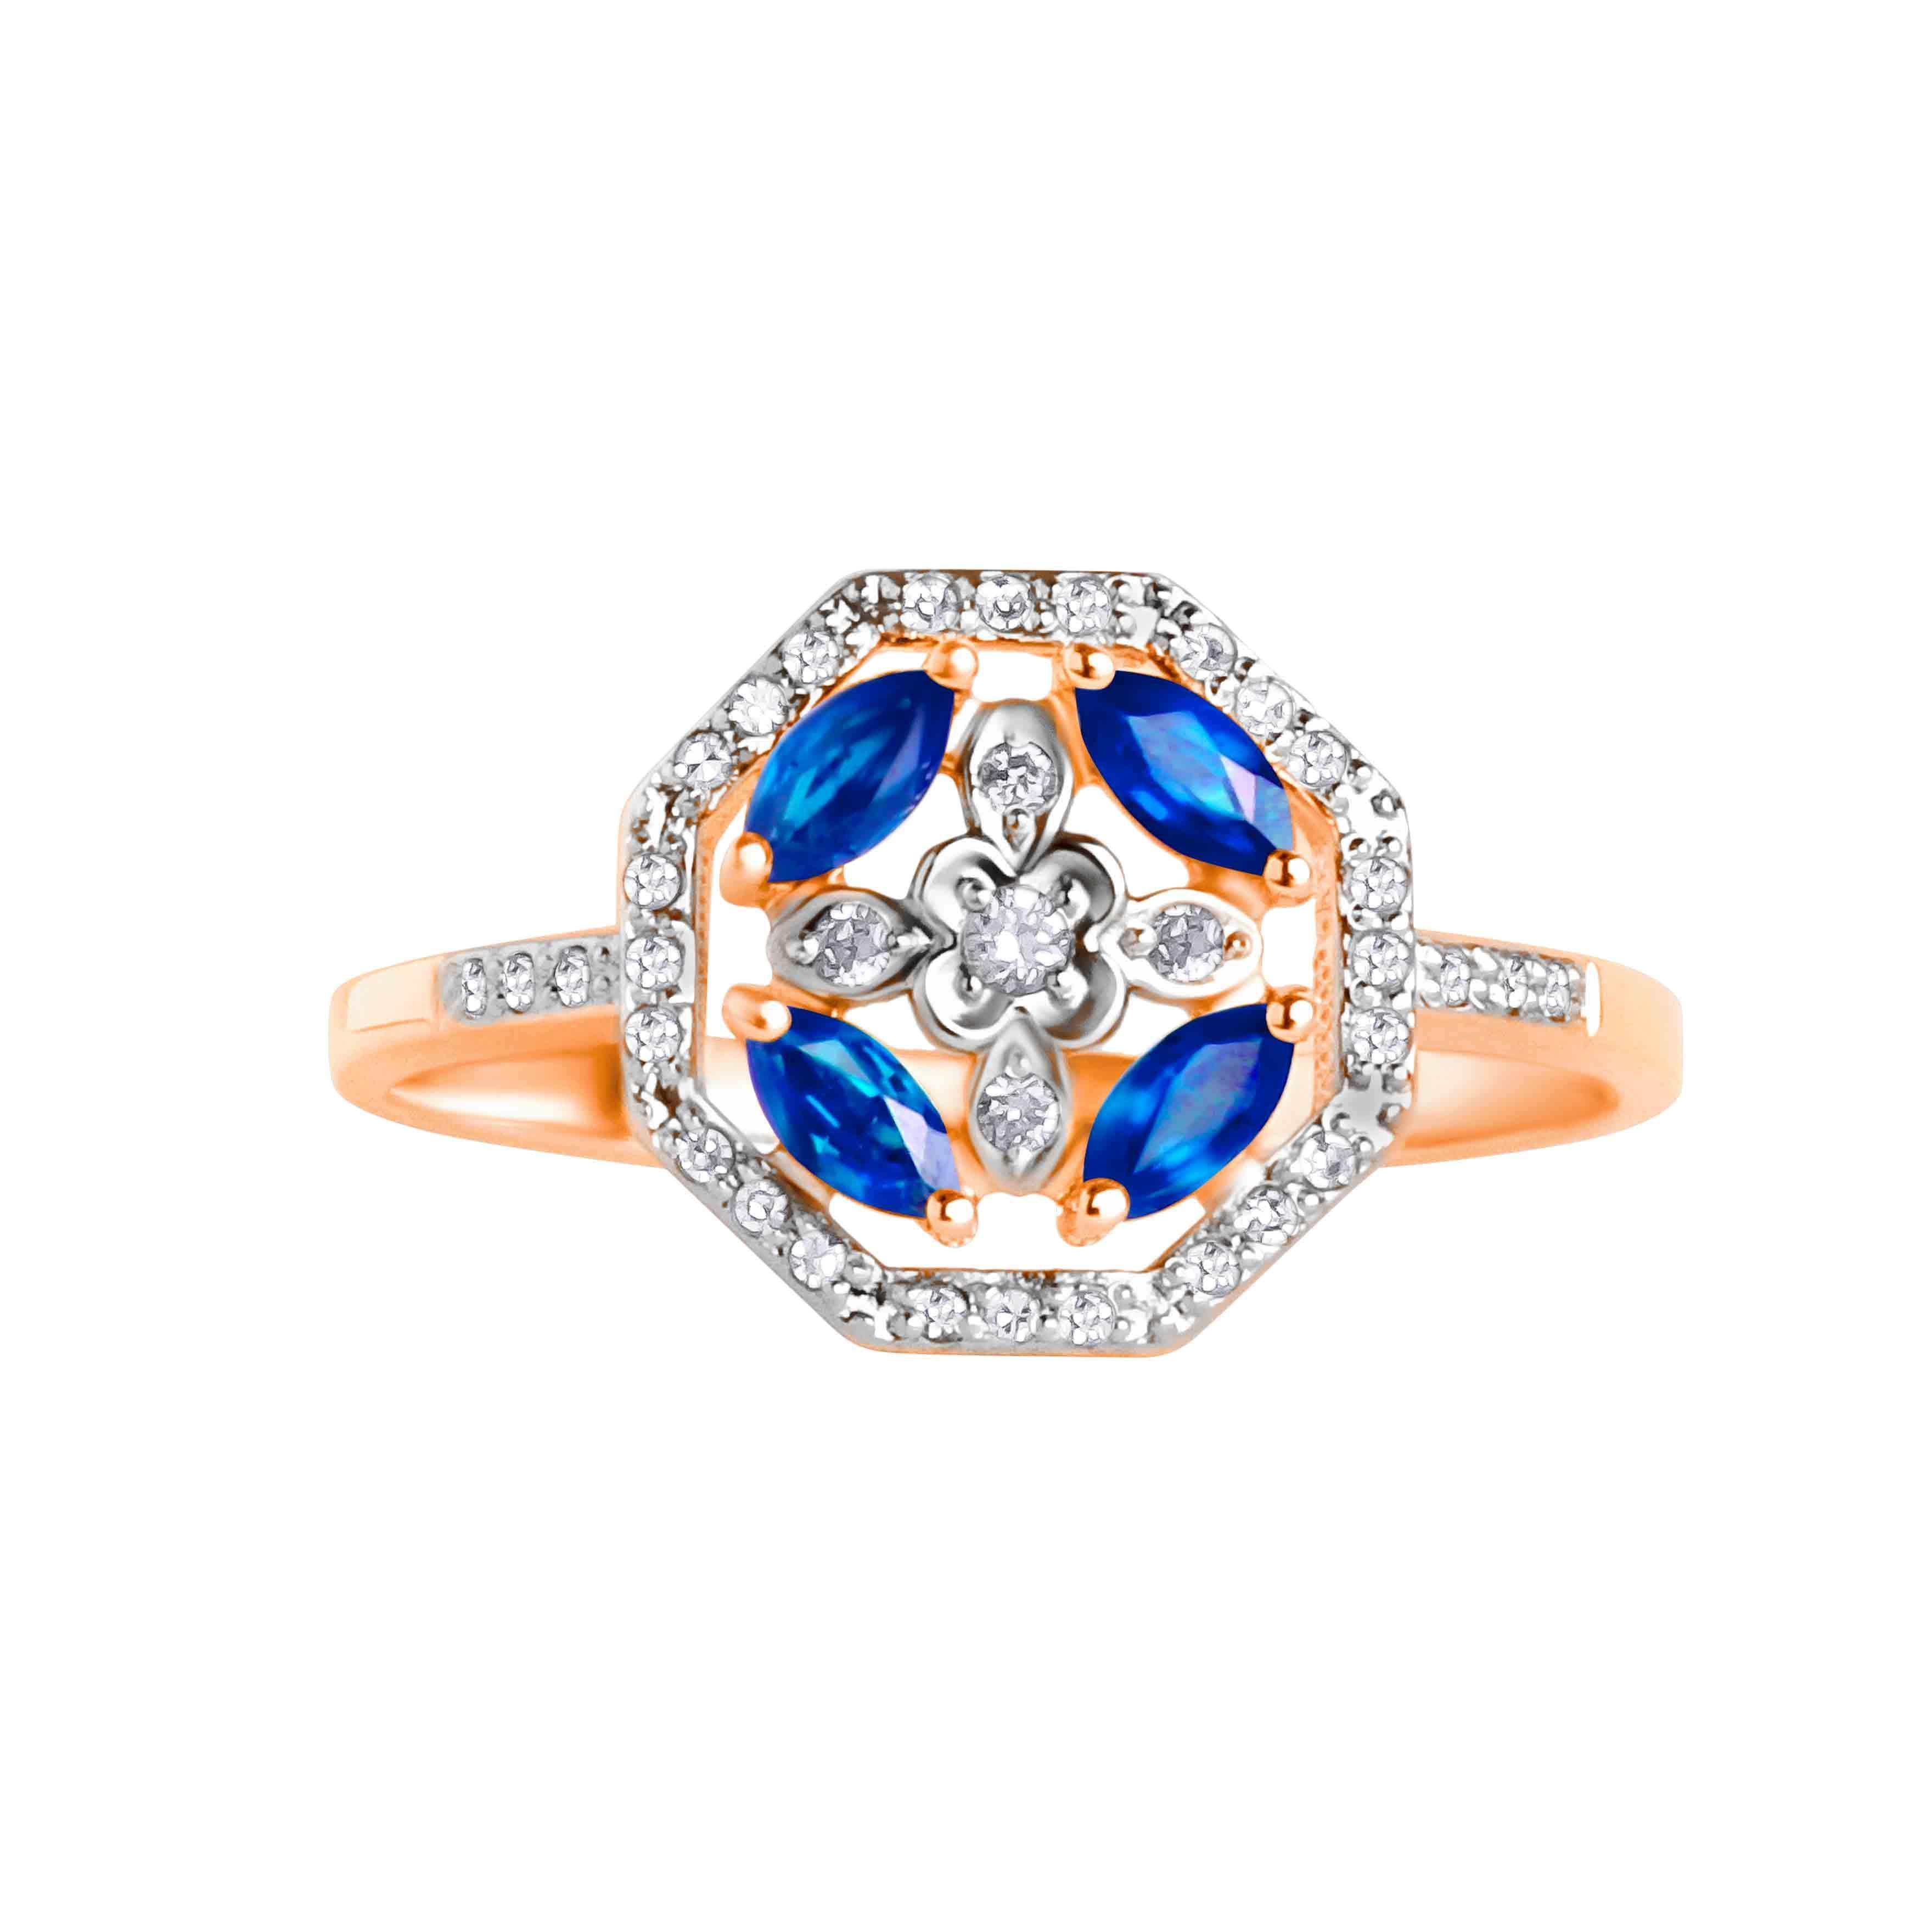 Sapphire ring view 2